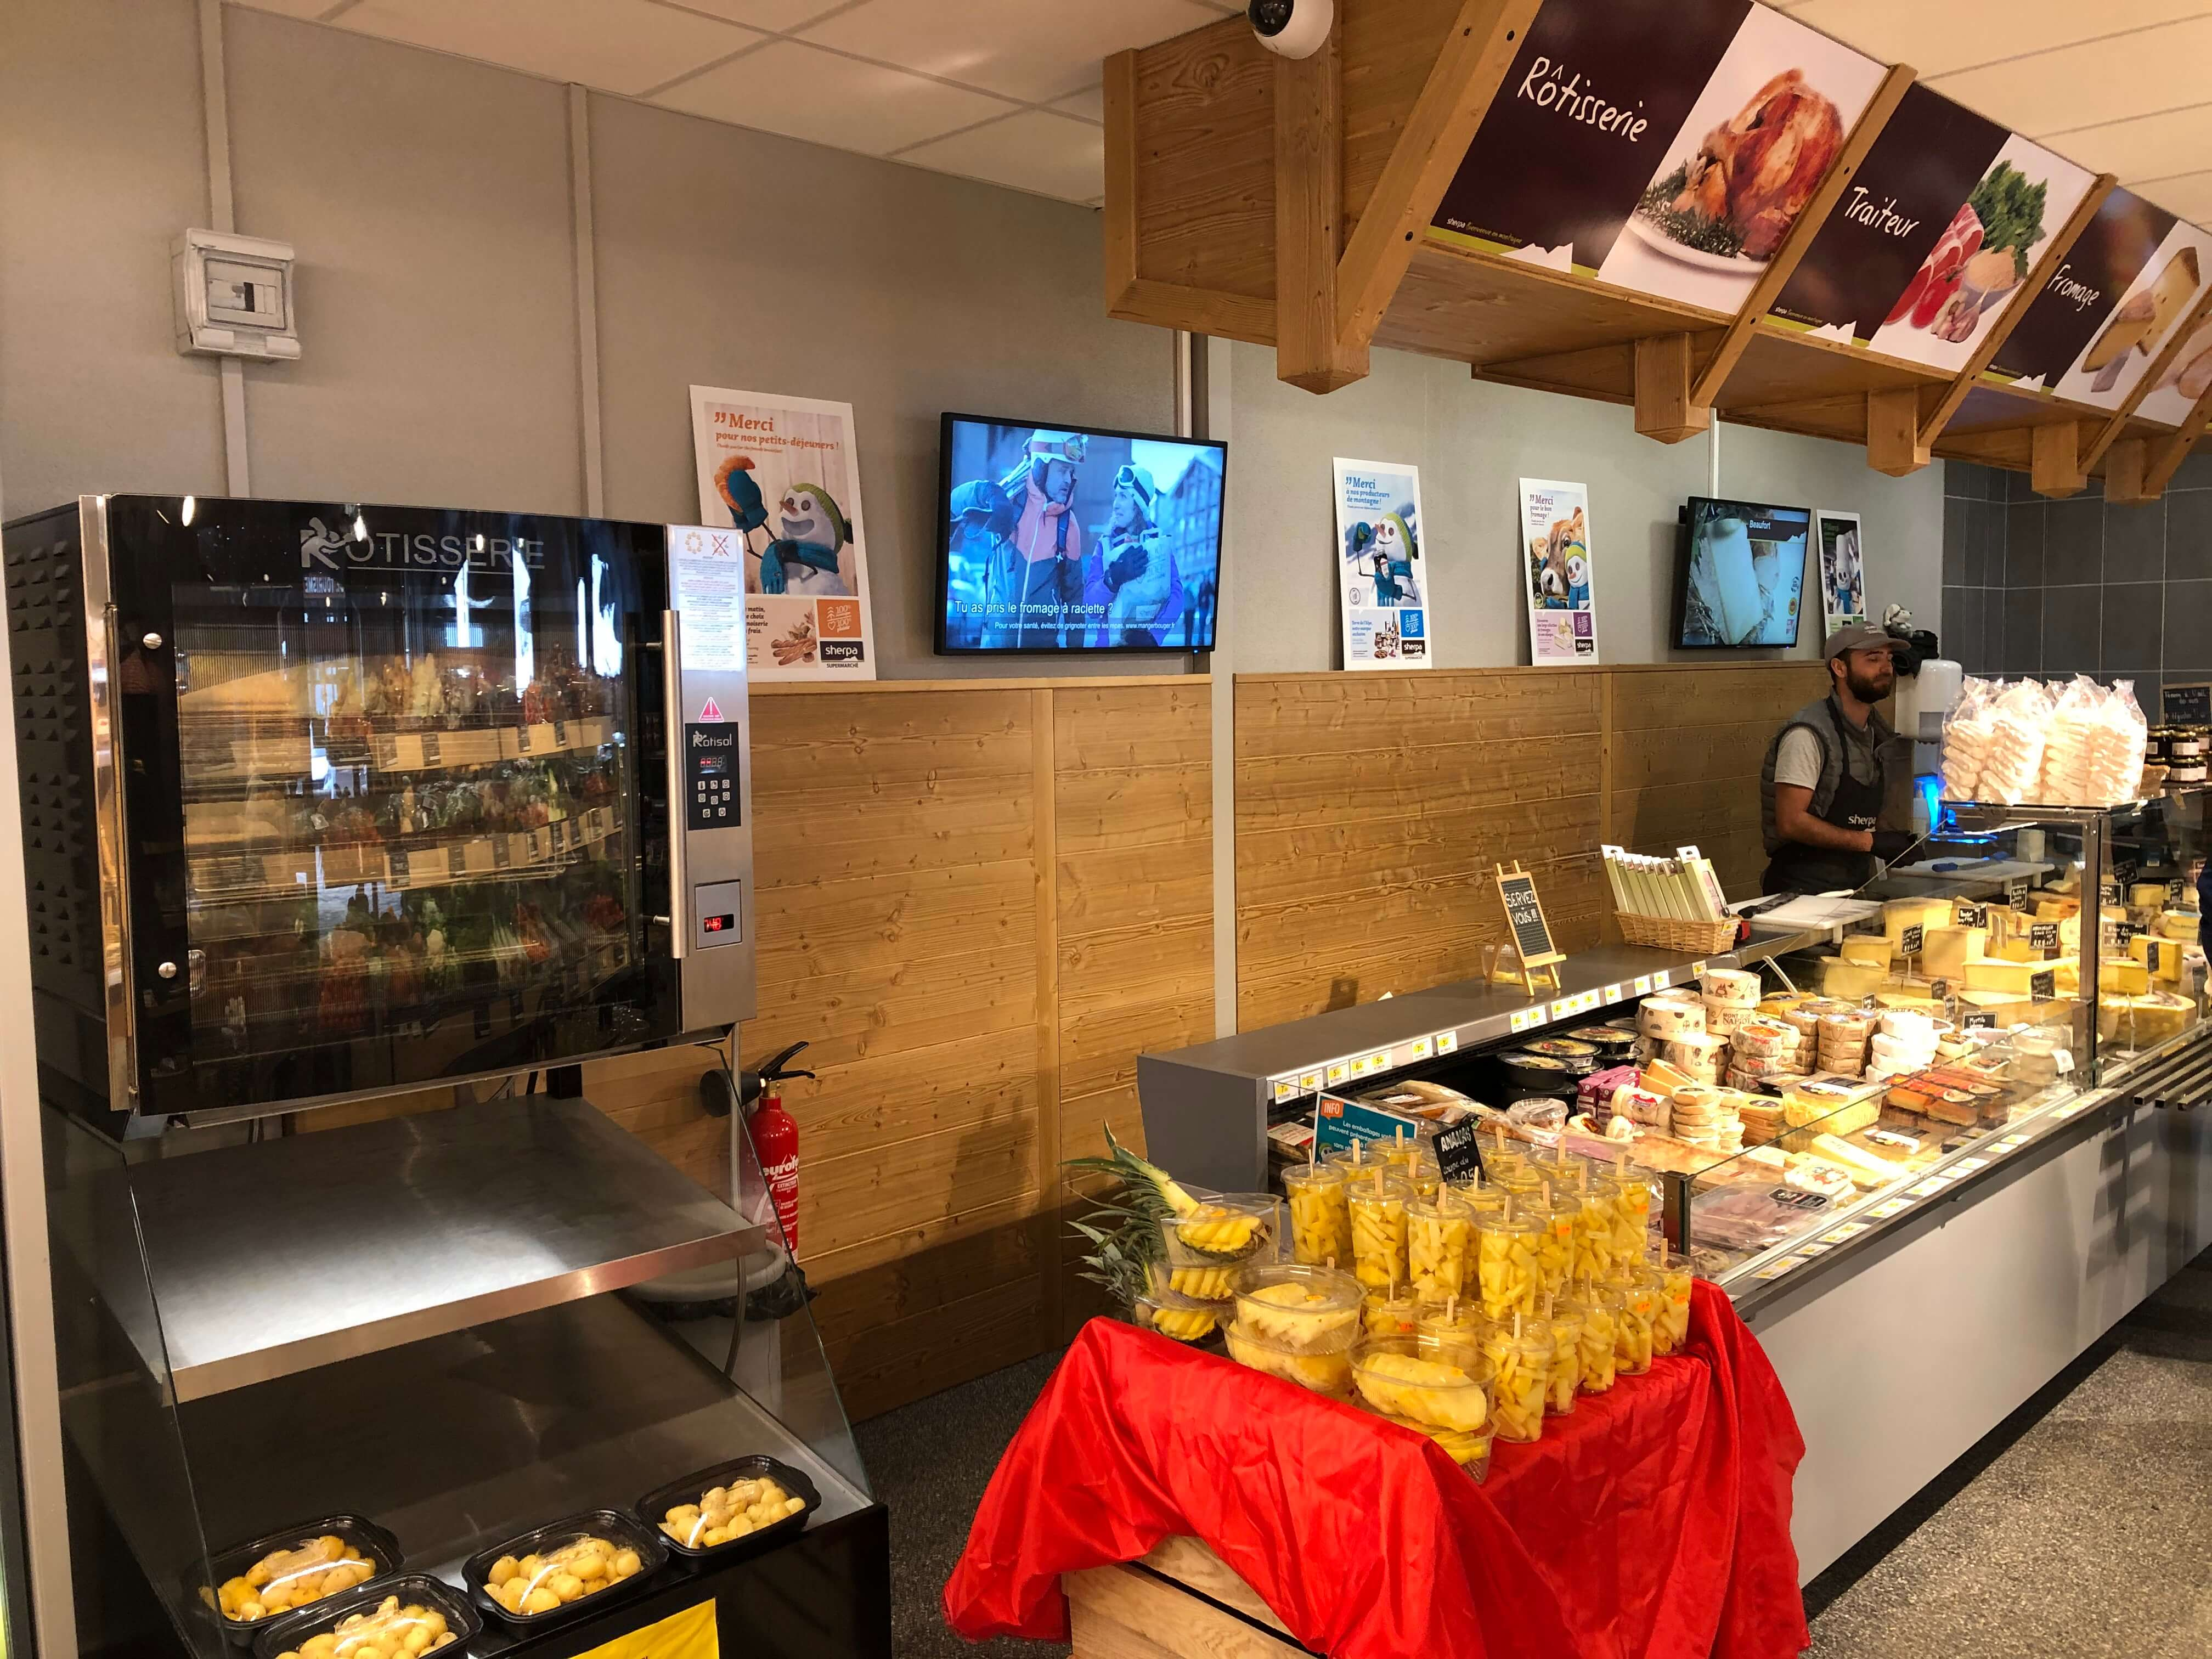 Sherpa supermarket Grand Bornand (Le) - Chinaillon cheese and butcher